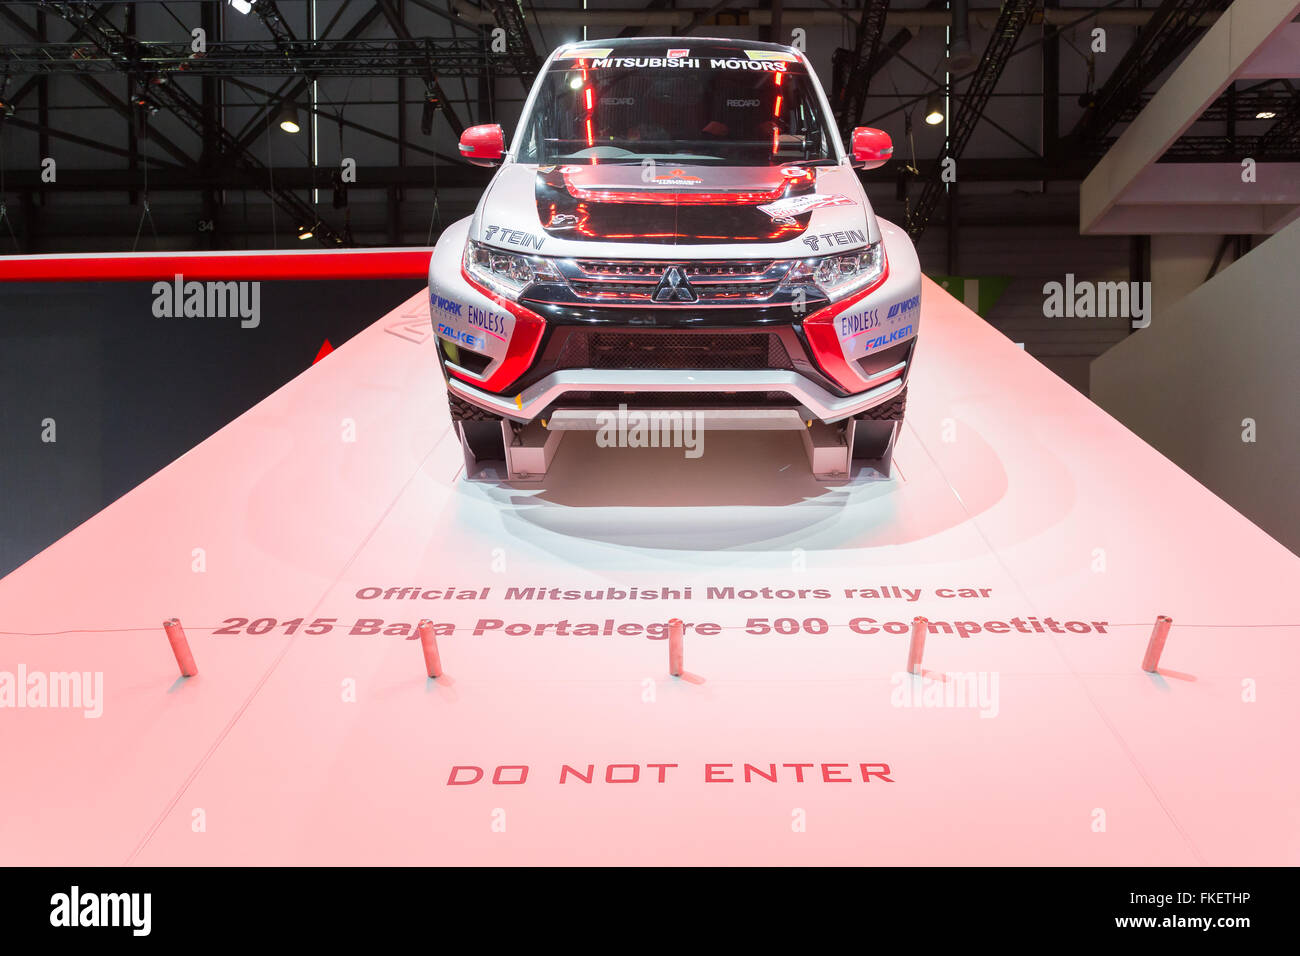 Official mitsubishi motors rallye car 2015 baja portalegre 500 competitor, car show in Geneva in 2016. - Stock Image